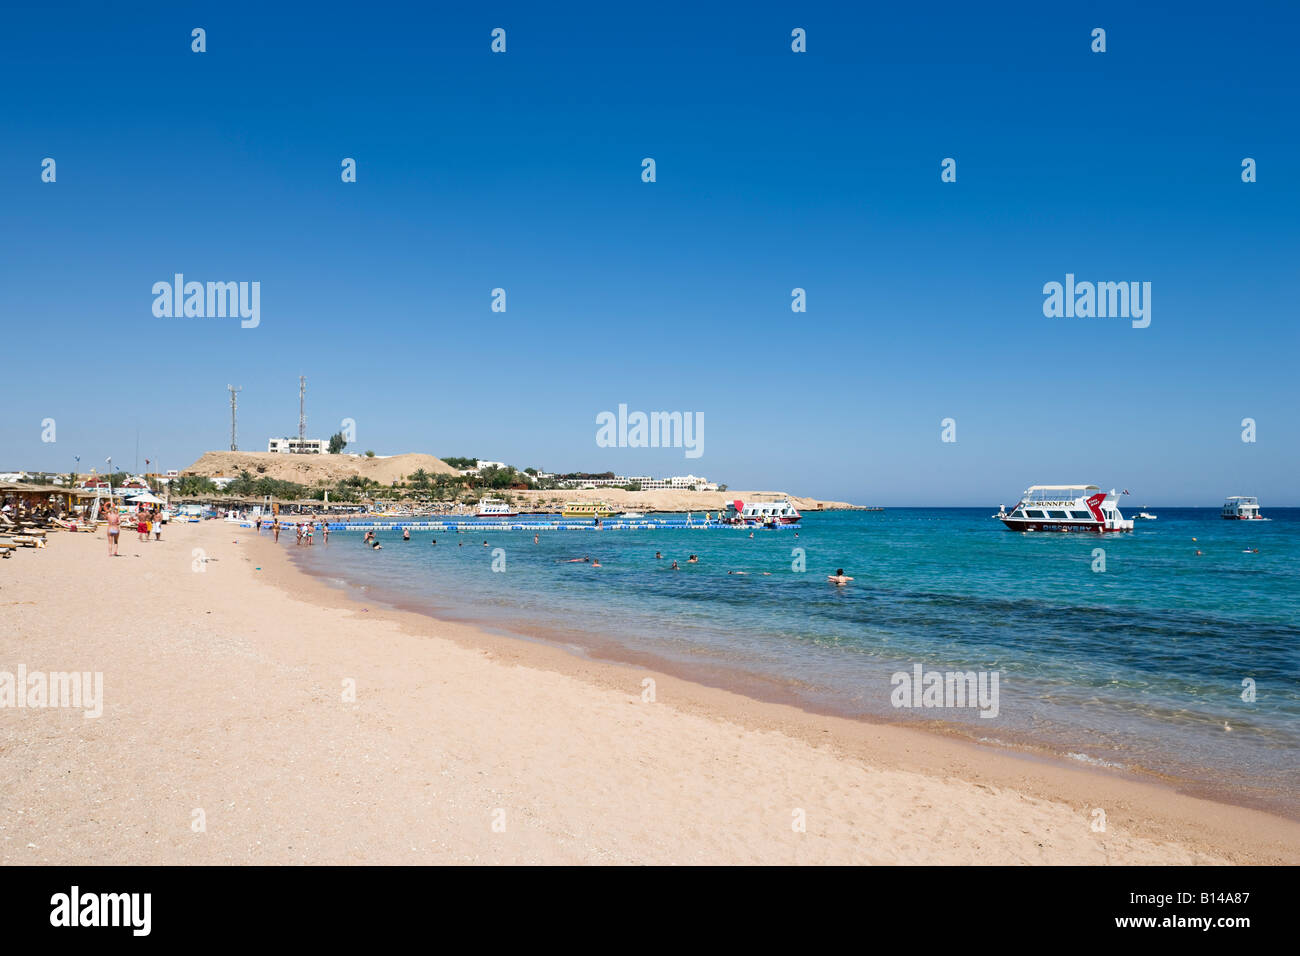 Naama Bay Beach, Sharm el-Sheikh, Red Sea Coast, South Sinai, Egypt - Stock Image